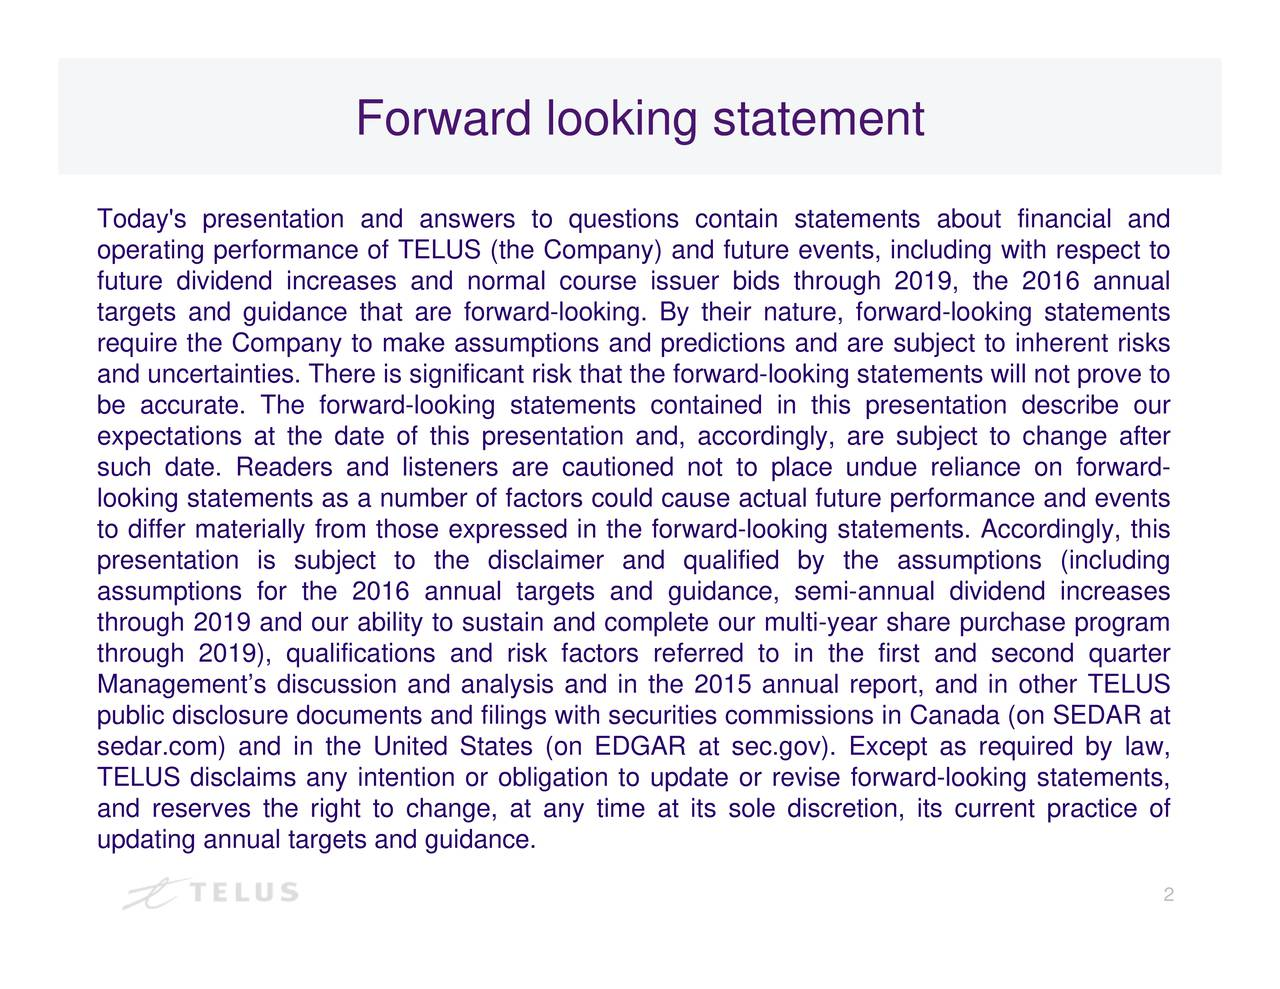 and future events, including guidance, semi-annual dividend increases e forward-looking statements will not prove tost and second quarter s contained in this presentation describe ours in Canada (on SEDAR at n and, accordingly, are subject to change after Forward looking statement TodopfsttngepinrereagicahotenEysettoaoirCannbmaitrnUar0eibpeiciislntdiititt1